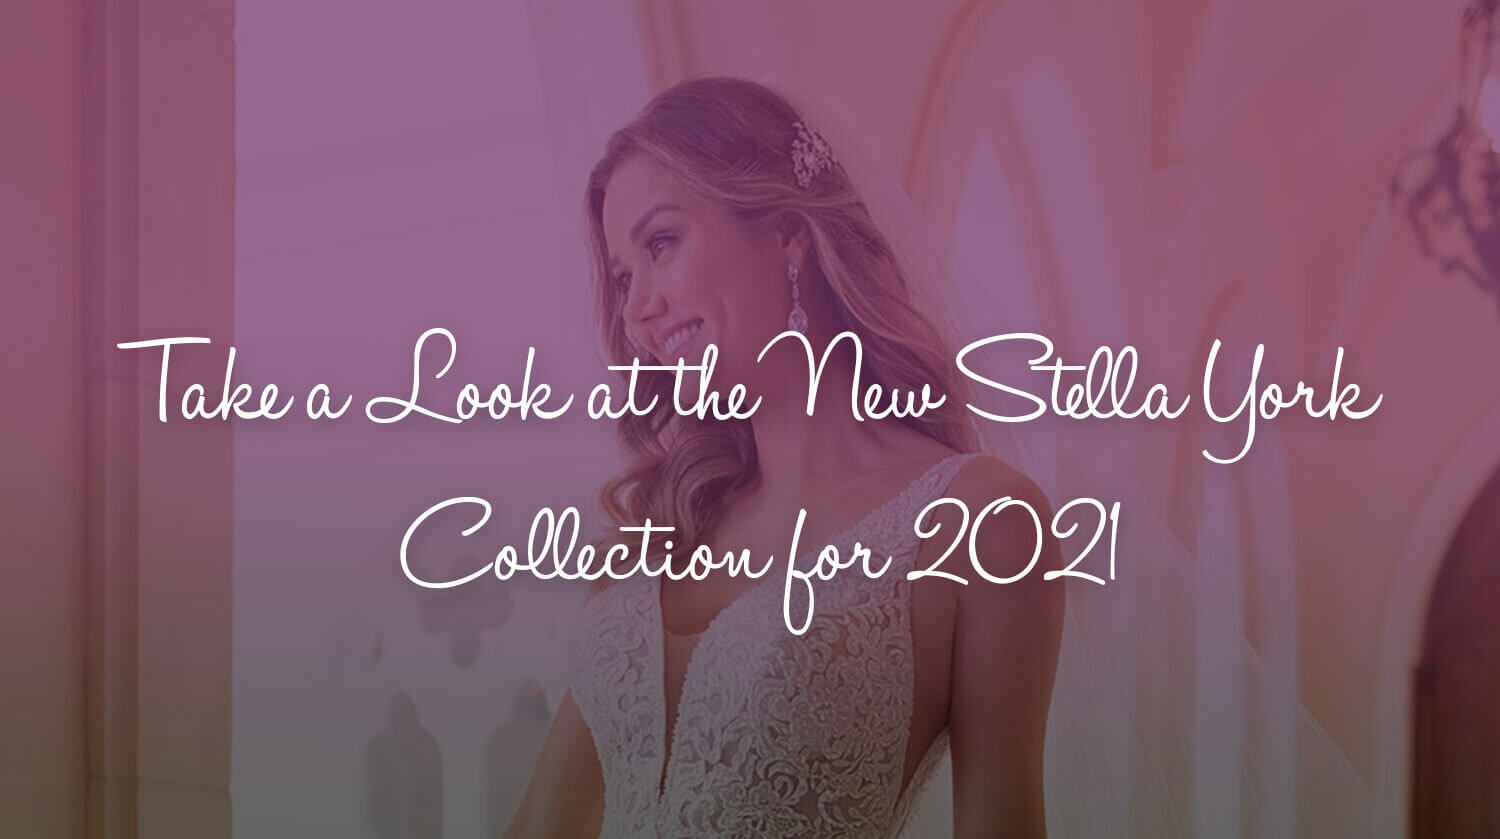 Take a Look at the New Stella York Collection for 2021